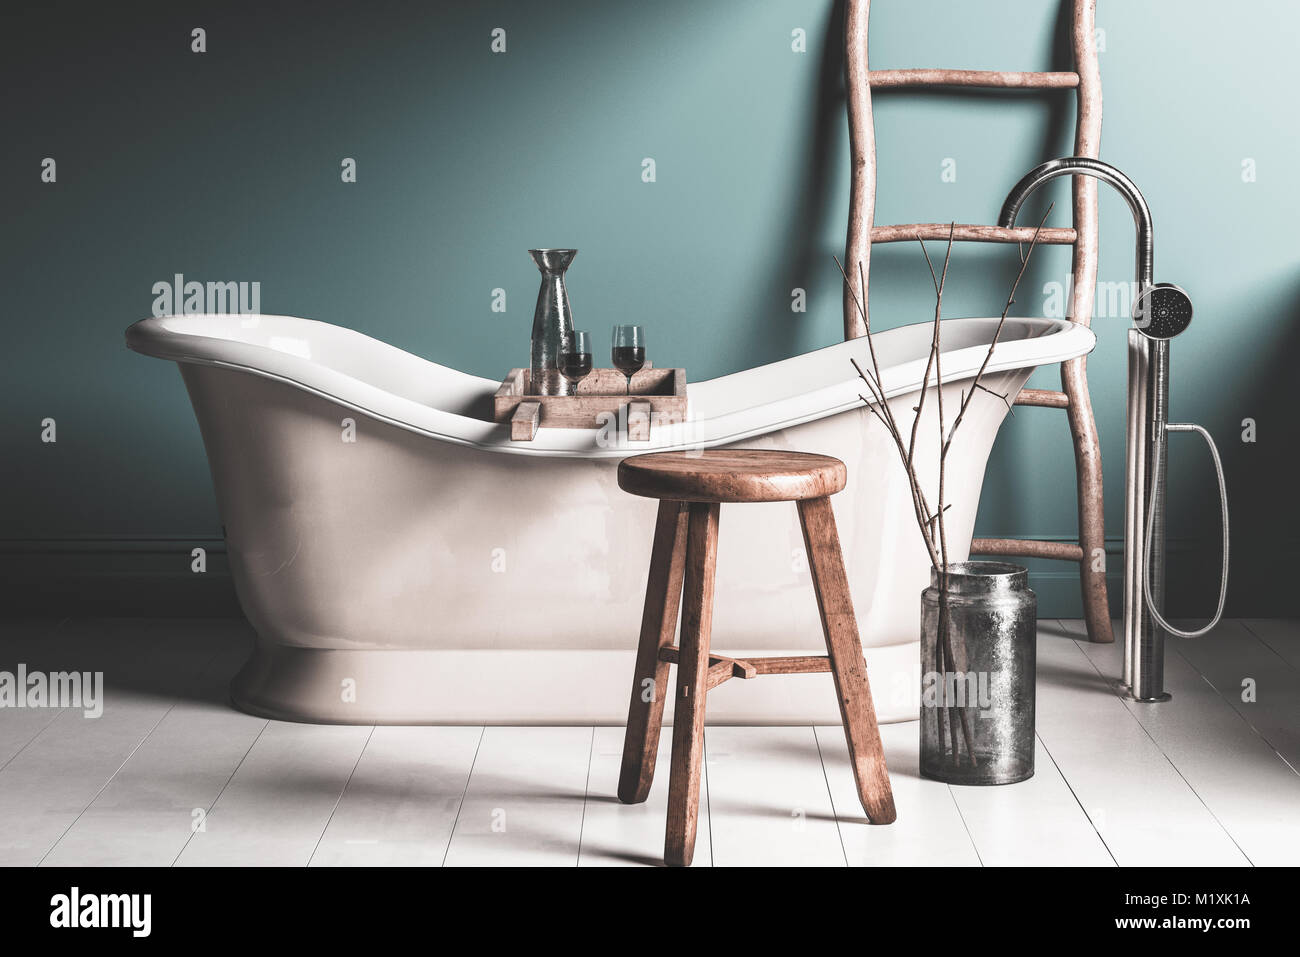 Old roll top chateau-style bathtub in a rustic bathroom with tiled ...